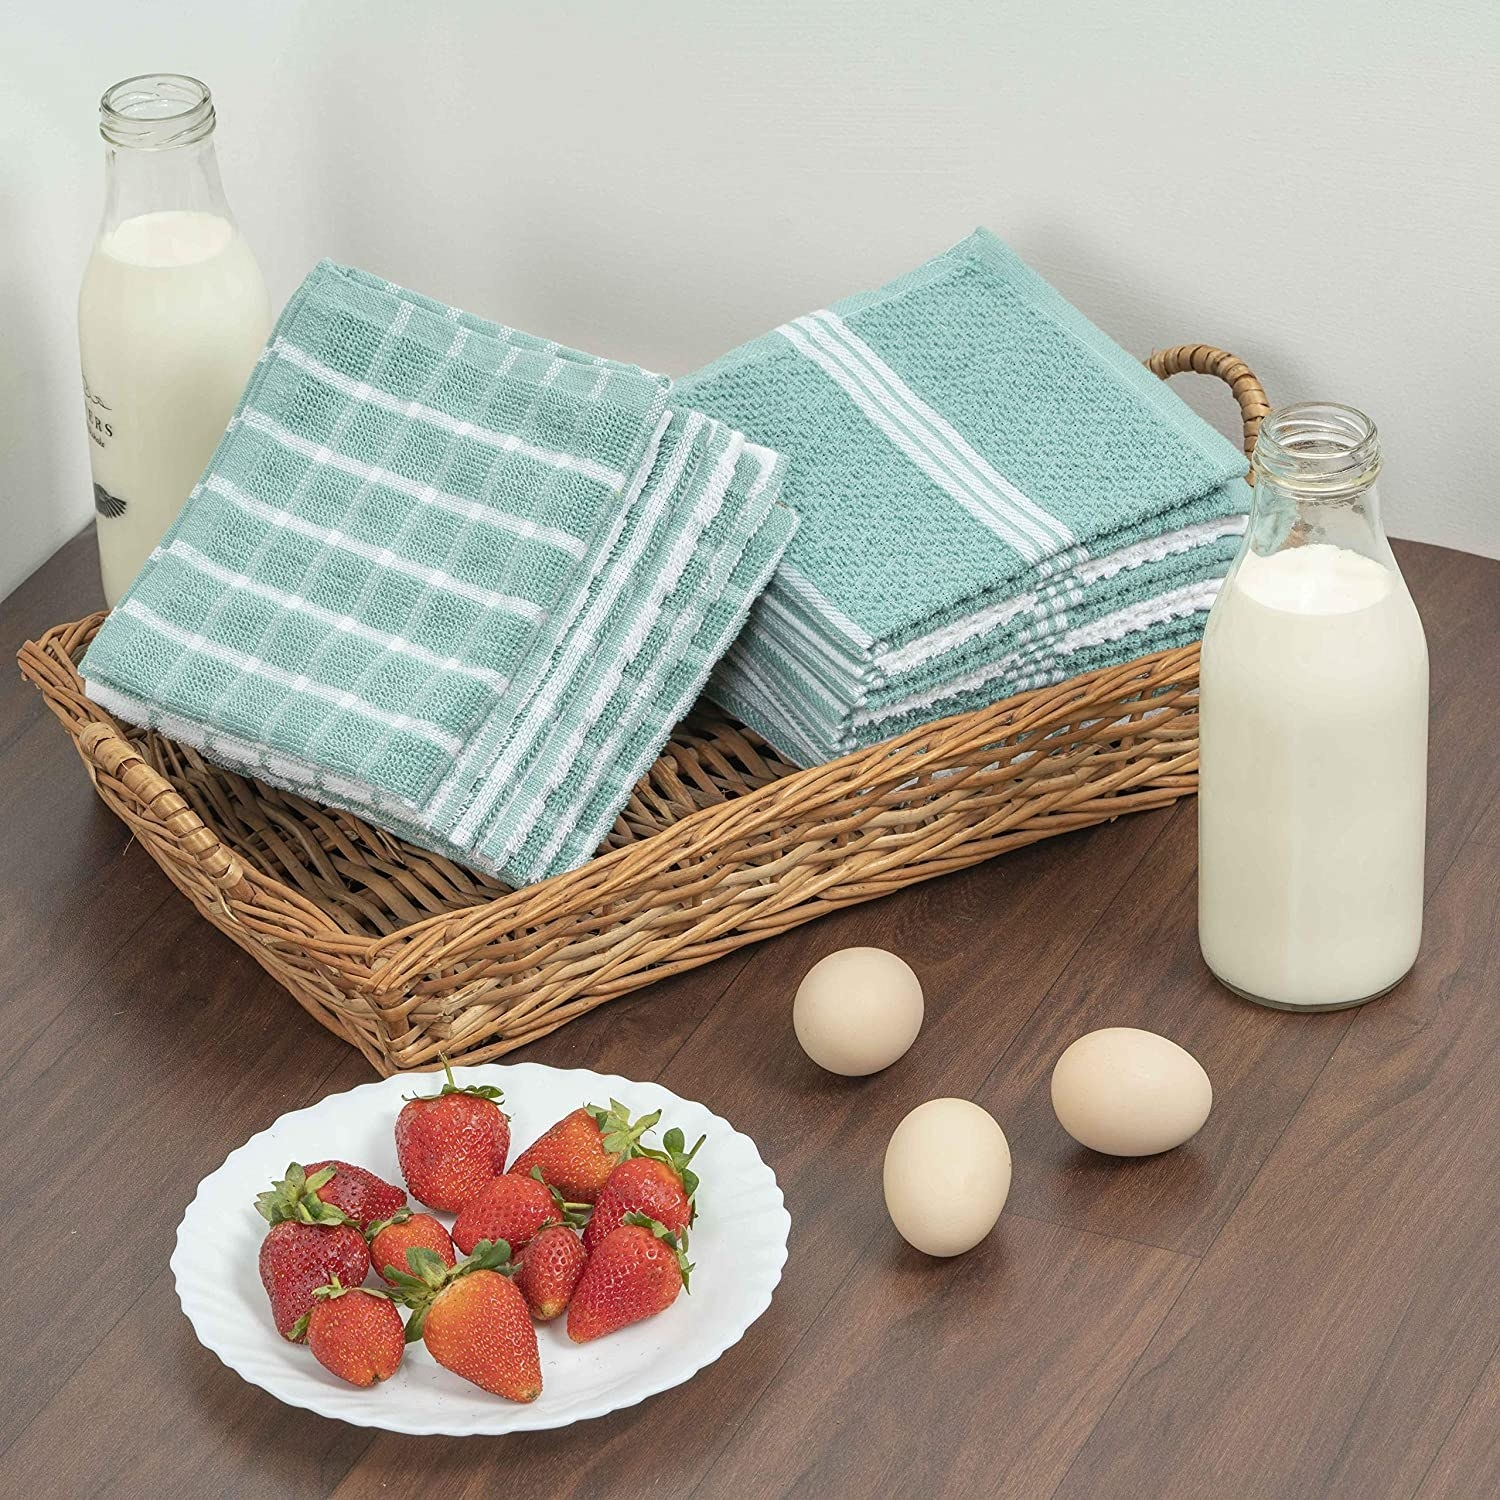 The washcloths are aqua in colour and are kept in a cane basket. There are bottles of milk, eggs, and plate of strawberries placed near it the basket.